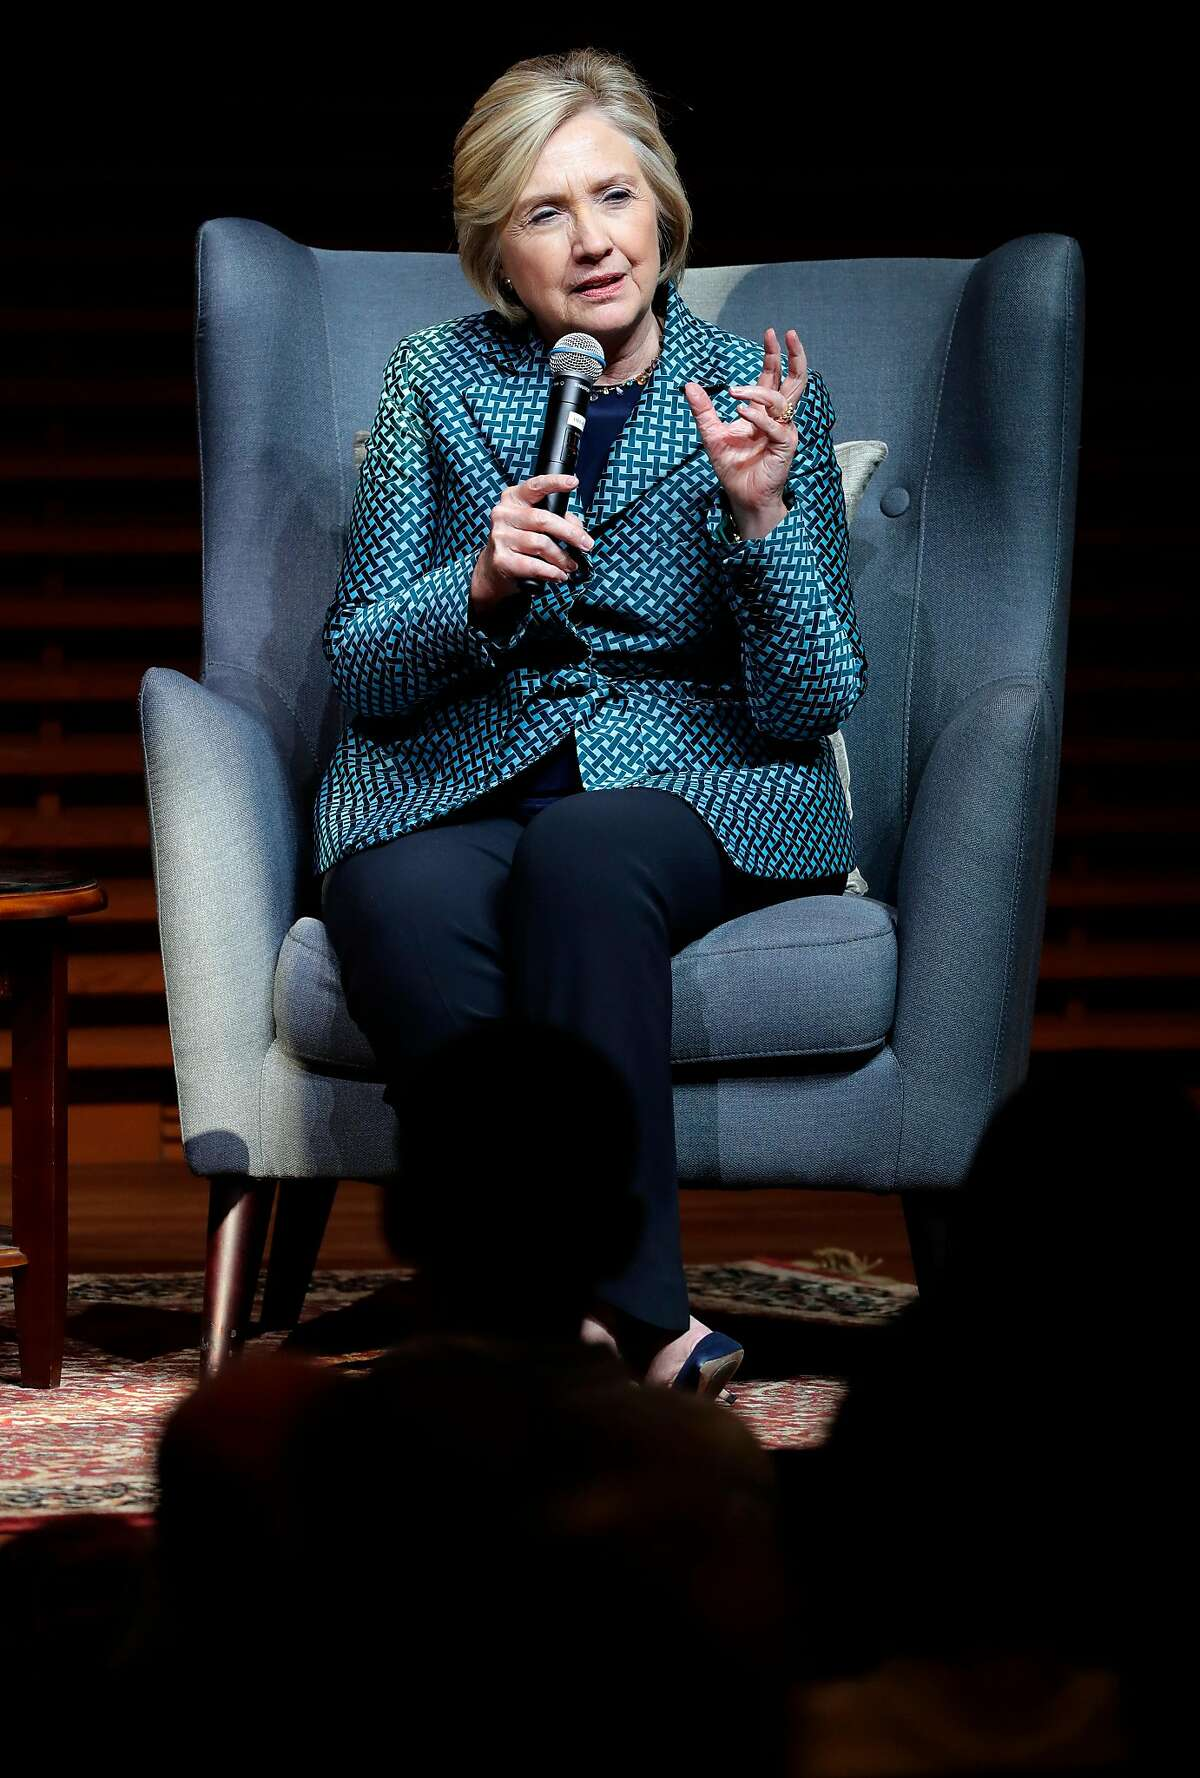 Former U.S. Secretary of State and 2016 Democratic presidential candidate Hillary Clinton, in conversation with Eileen Donahoe, executive director of the Global Digital Policy Incubator, as they discuss Digital Technology, Diplomacy, and Democratic Values, at Stanford University on Fri. October 6, 2017.